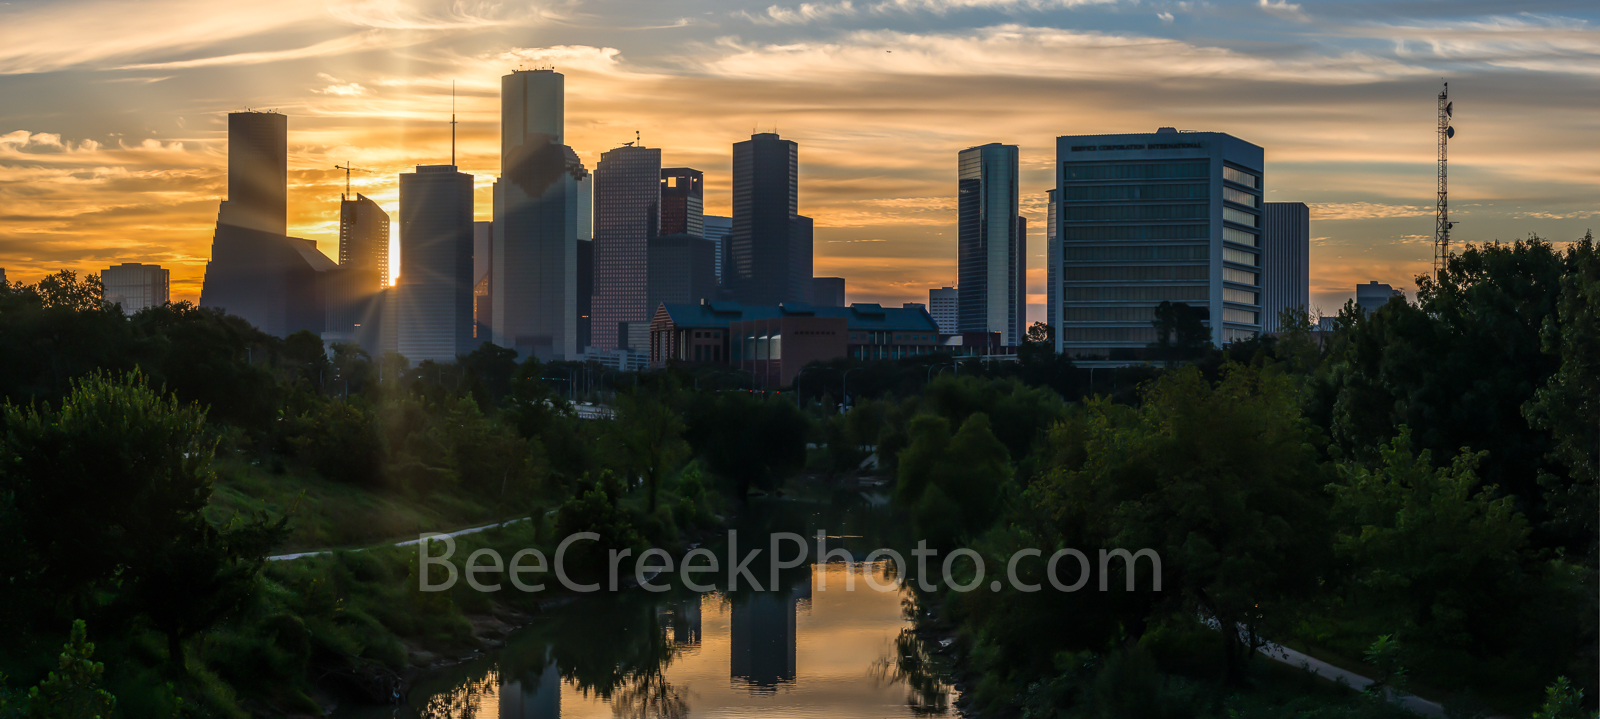 Houston skyline, sunrise, Buffalo Bayou,  golden, glow, pano, panorama, cityscape, city, downtown, sun rays, high rise buildings, parks, morning,  gulf of mexico,